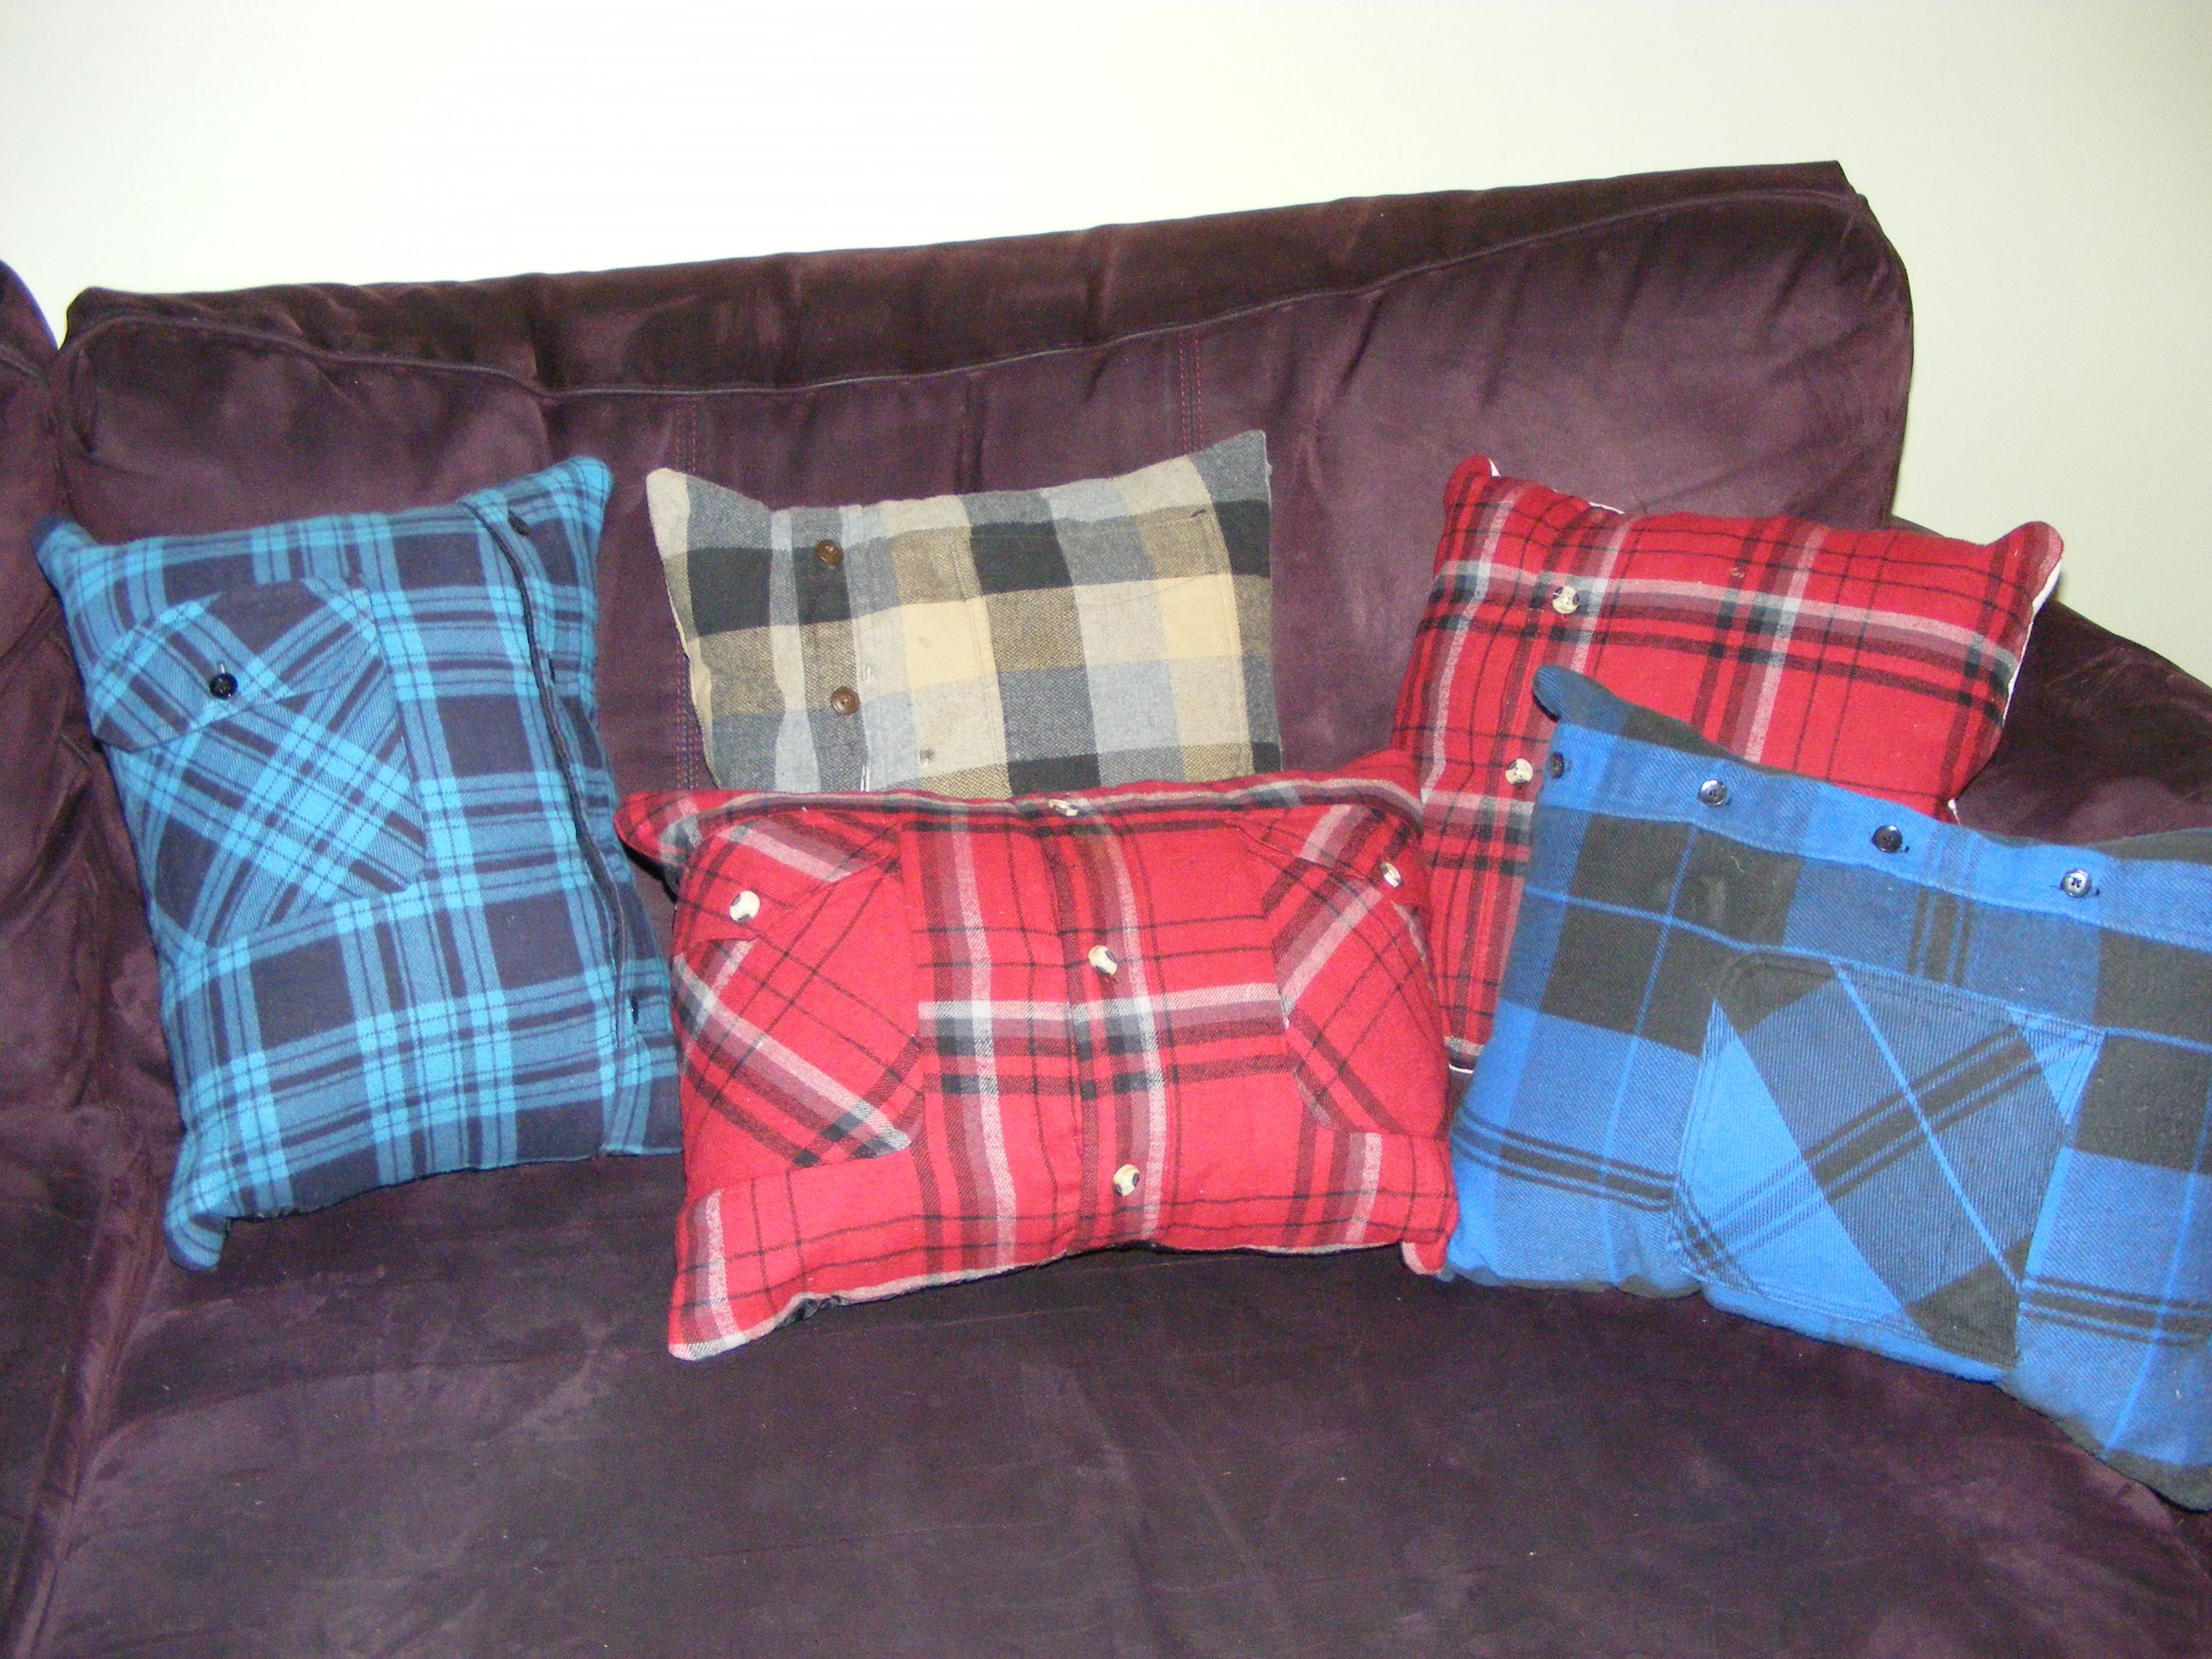 Pillows Grandfather' Flannel Shirts